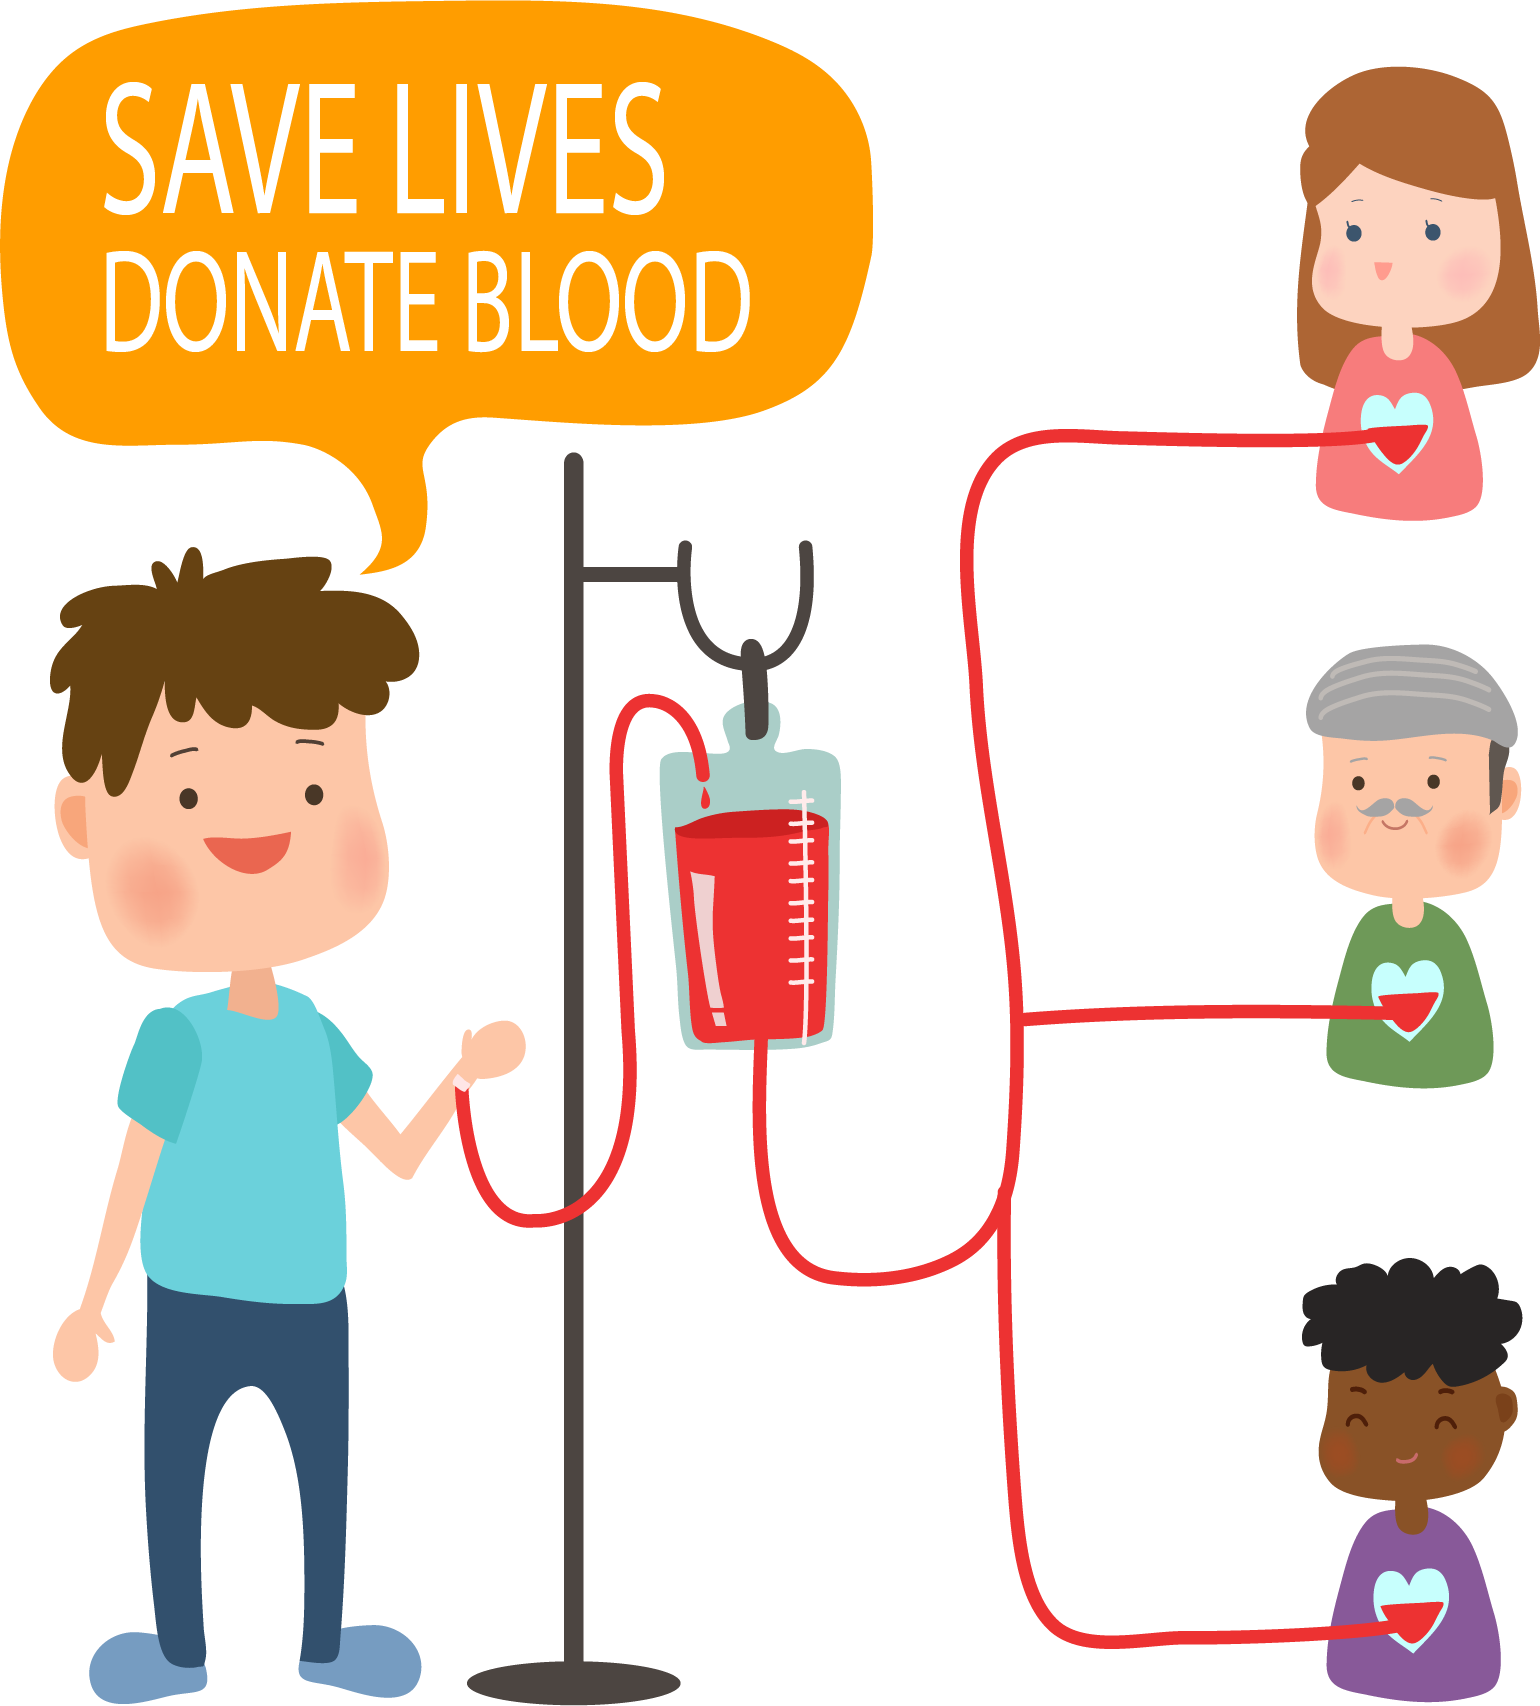 Donation clipart donor. Blood world day euclidean